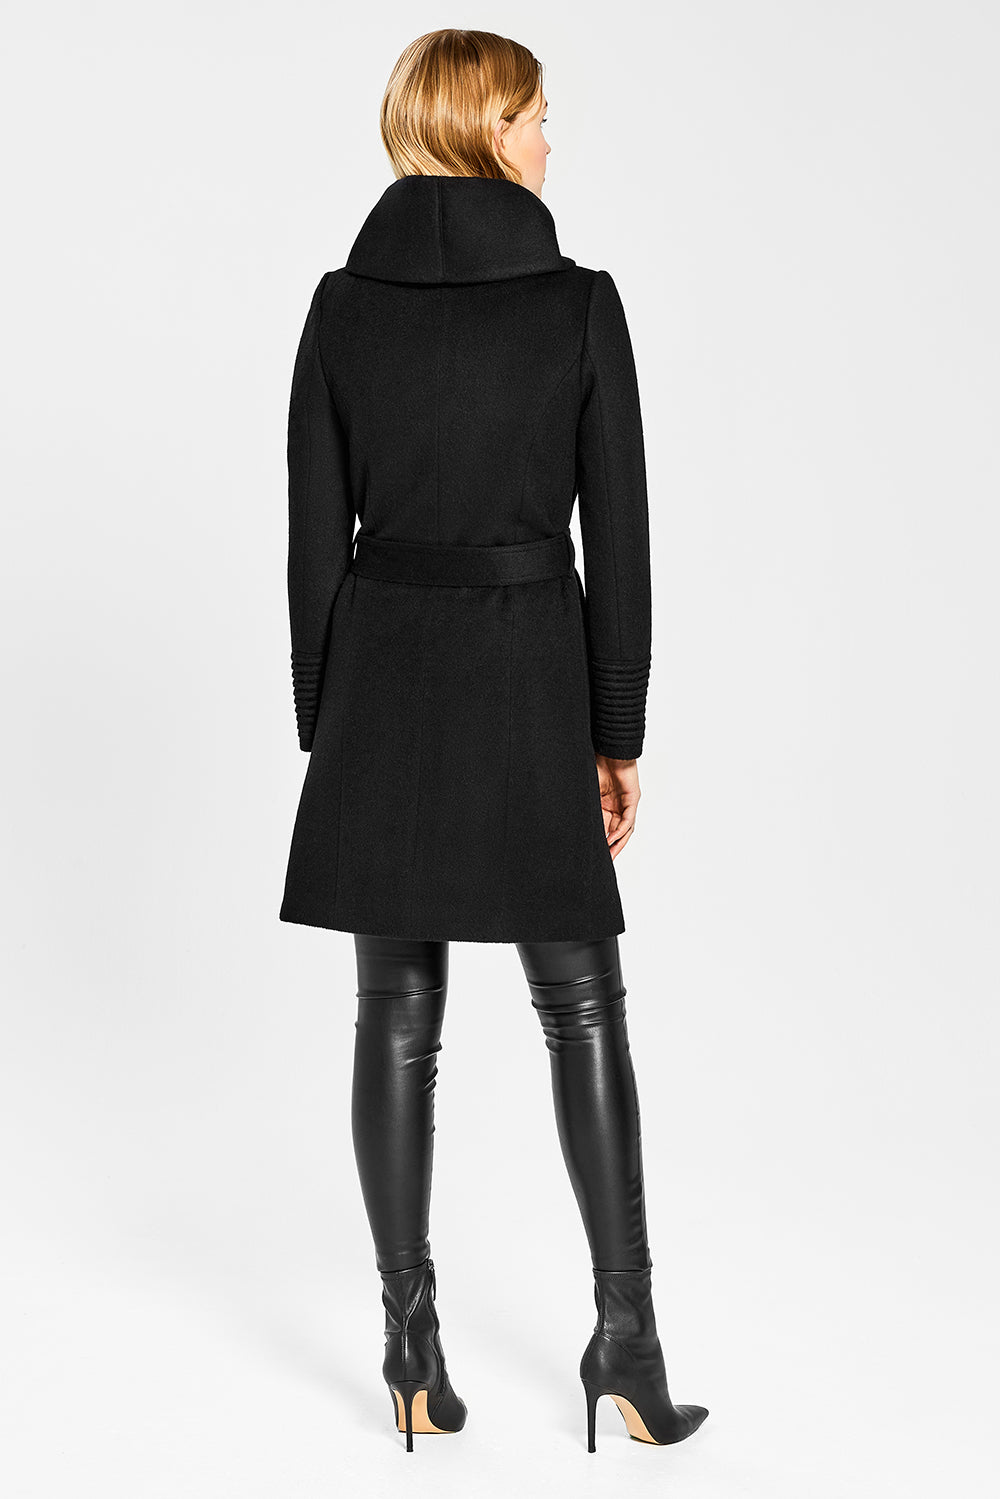 Sentaler Mid Length Hooded Wrap Coat featured in Baby Alpaca and available in Black. Seen from back.